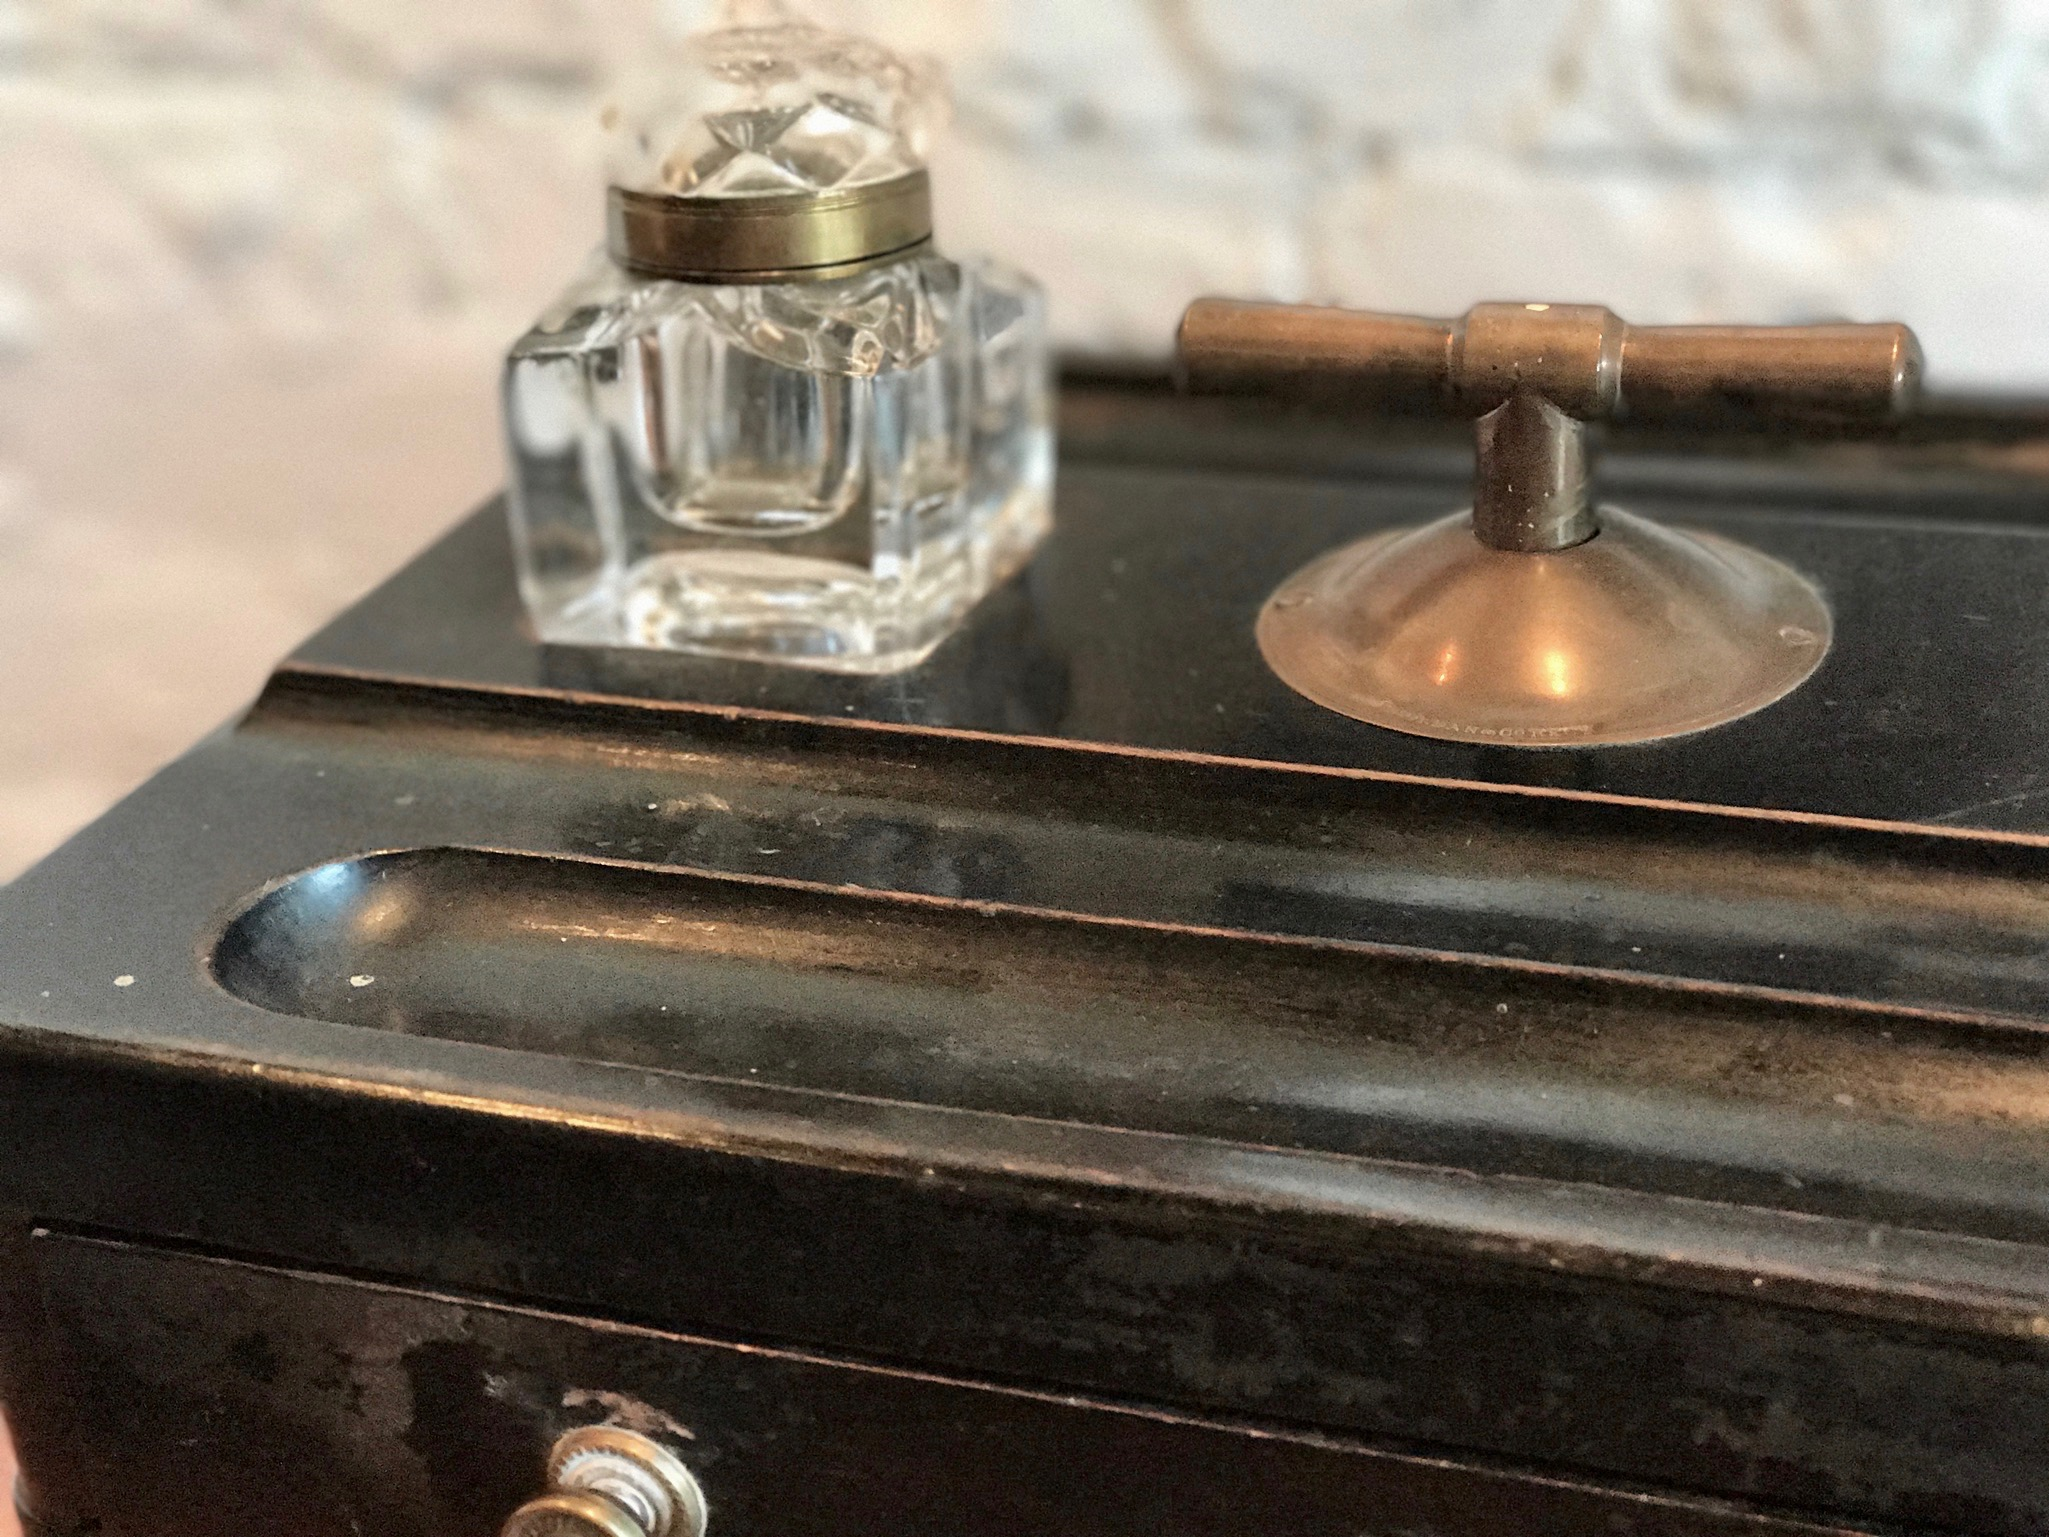 "Antique English Inkstand By S Morgan & Co. Circa 1870's   18.25"" L x 10.25"" D x 4.5"" H  $850   To order please call us at 202-234-5926 or email at boutique@darrylcarter.com. Please note pricing excludes taxes and shipping."